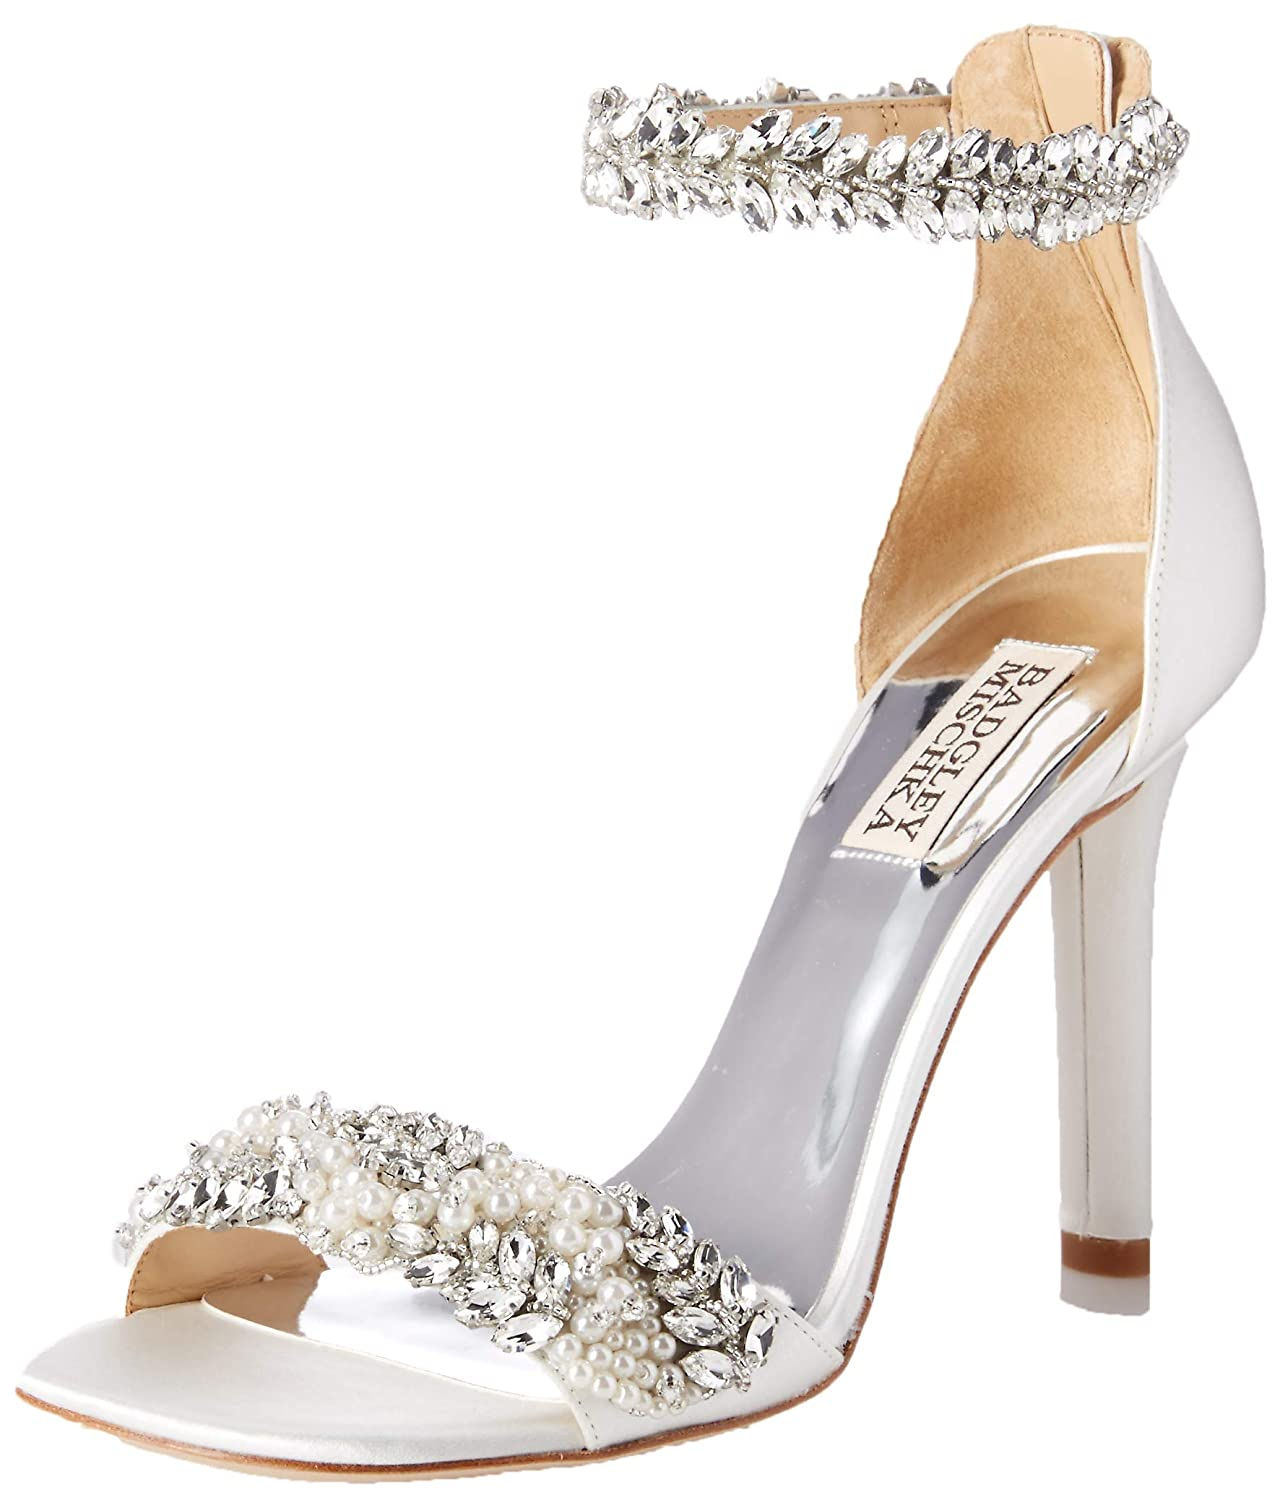 White Satin Badgley Mischka Womens Fiorenza Heeled Sandal